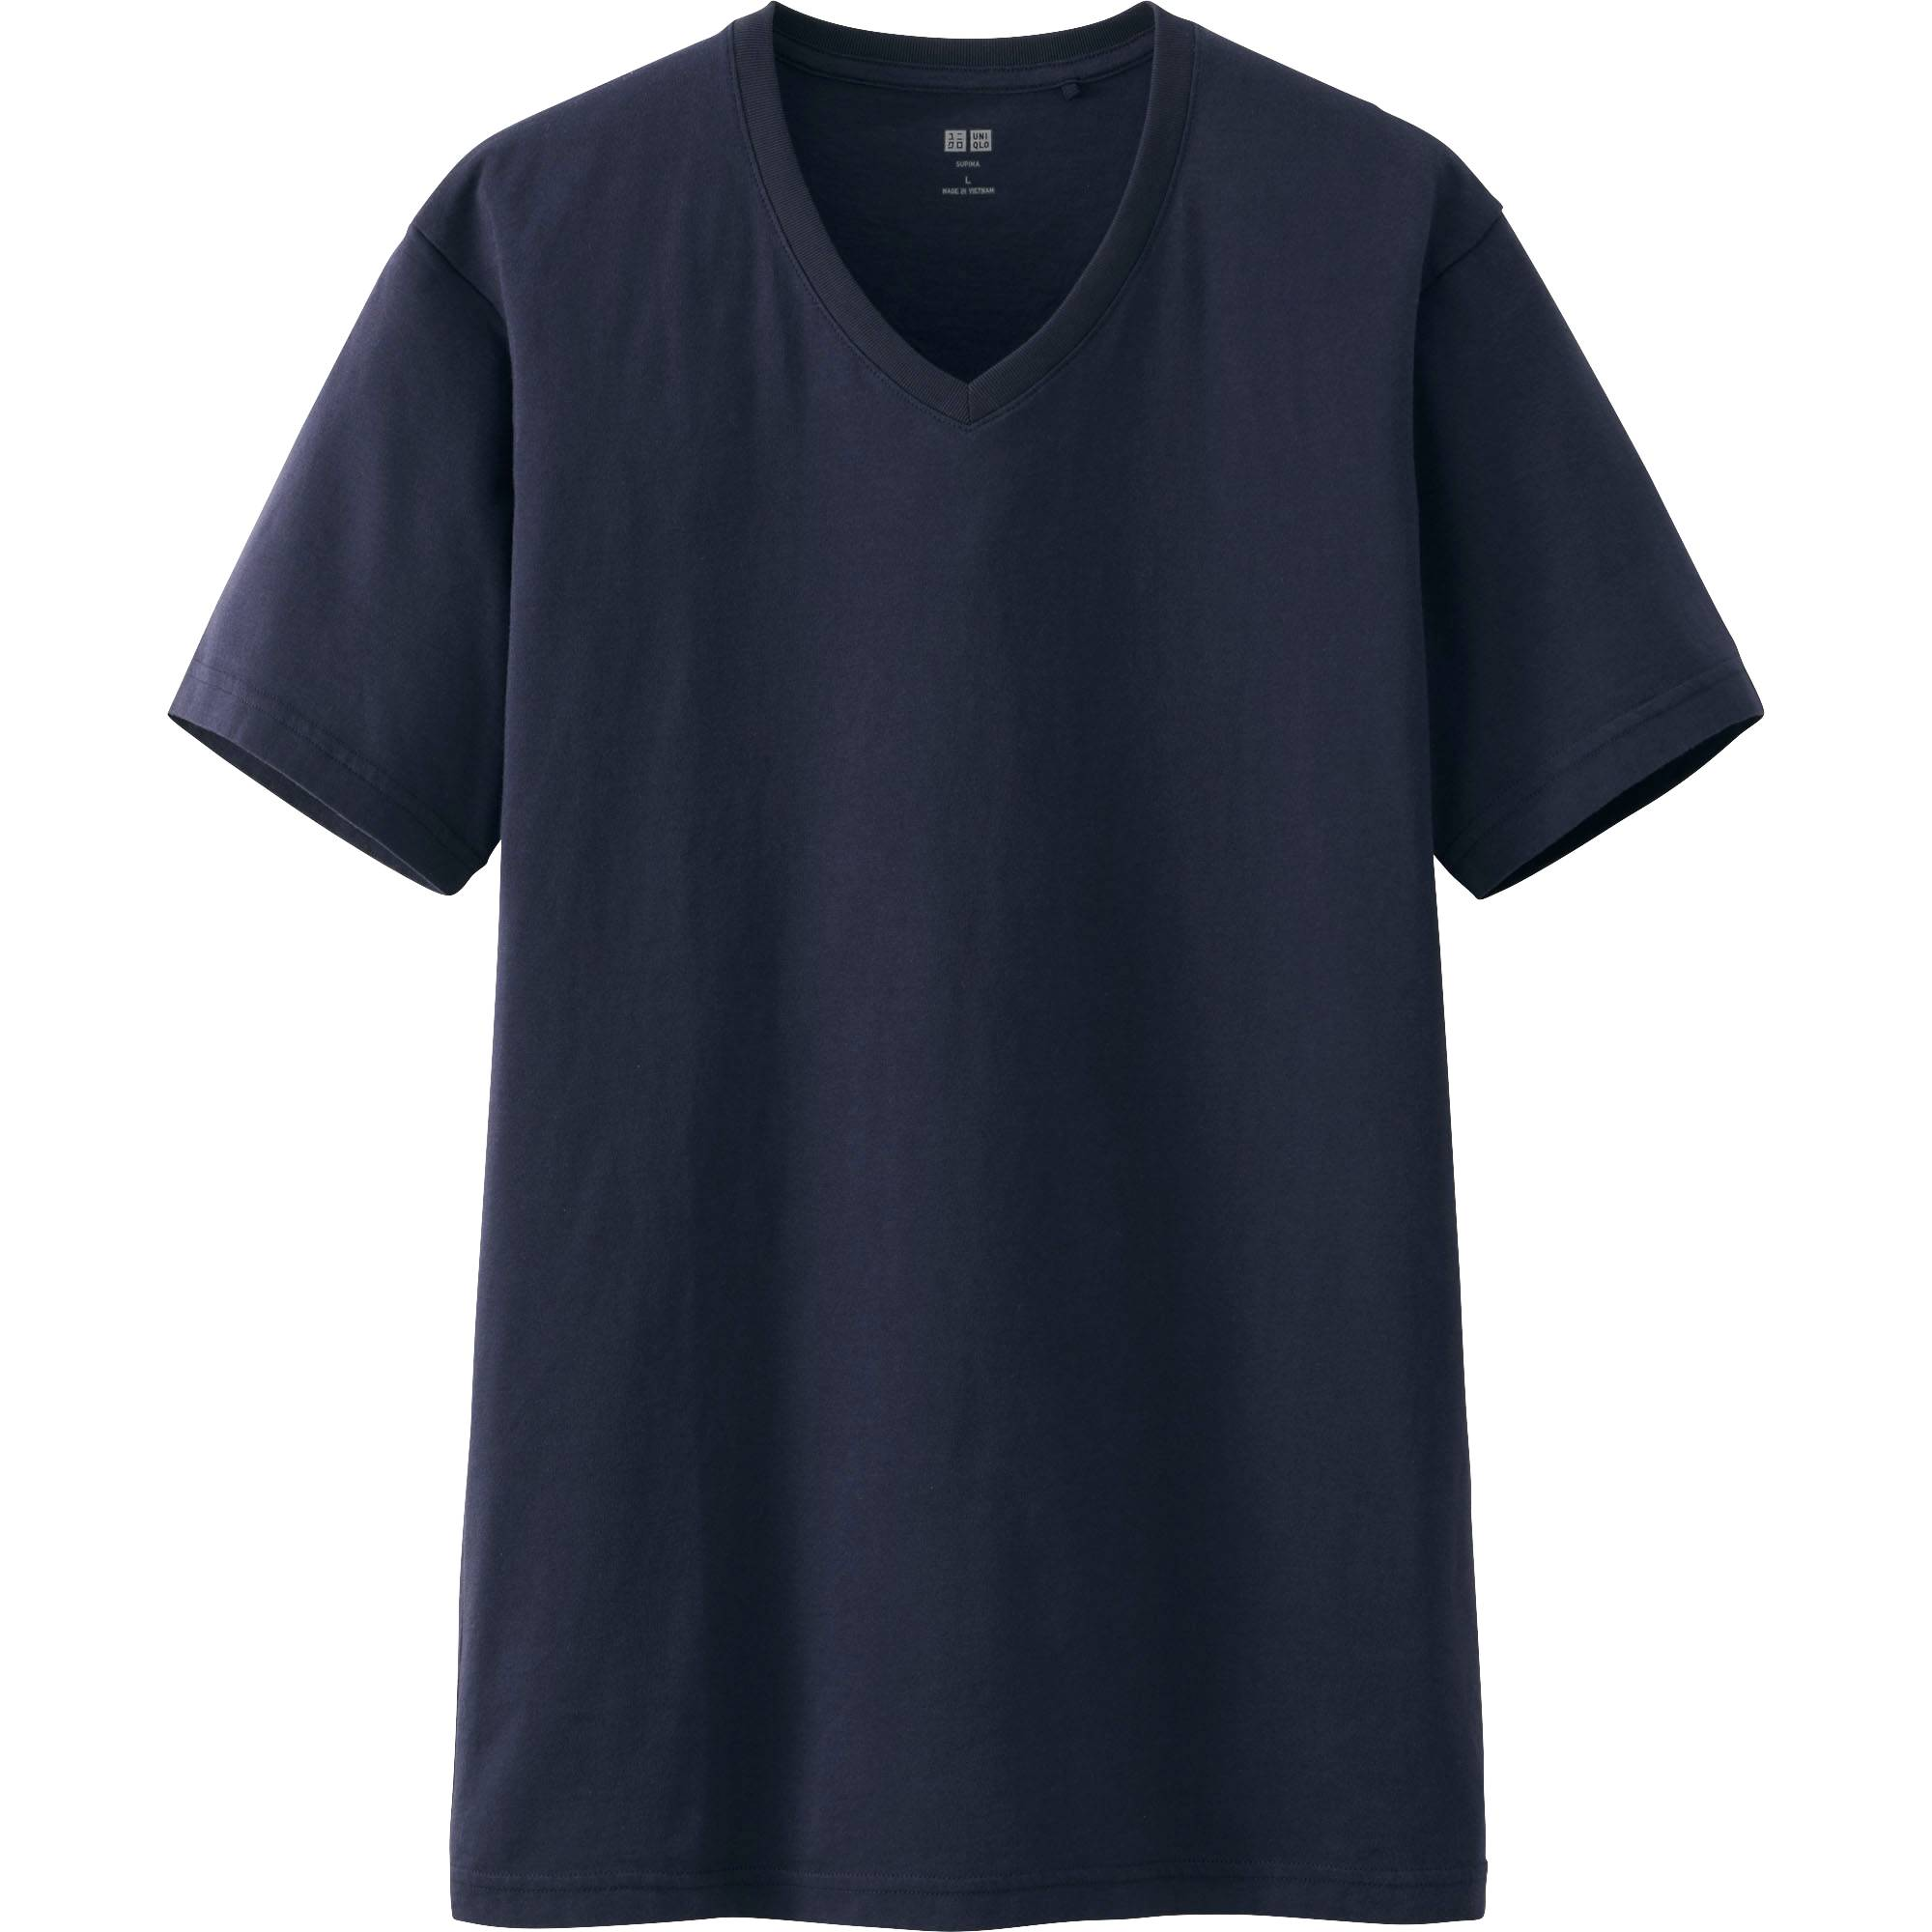 Black t shirts v neck - Men Supima Cotton V Neck Short Sleeve T Shirt Navy Large